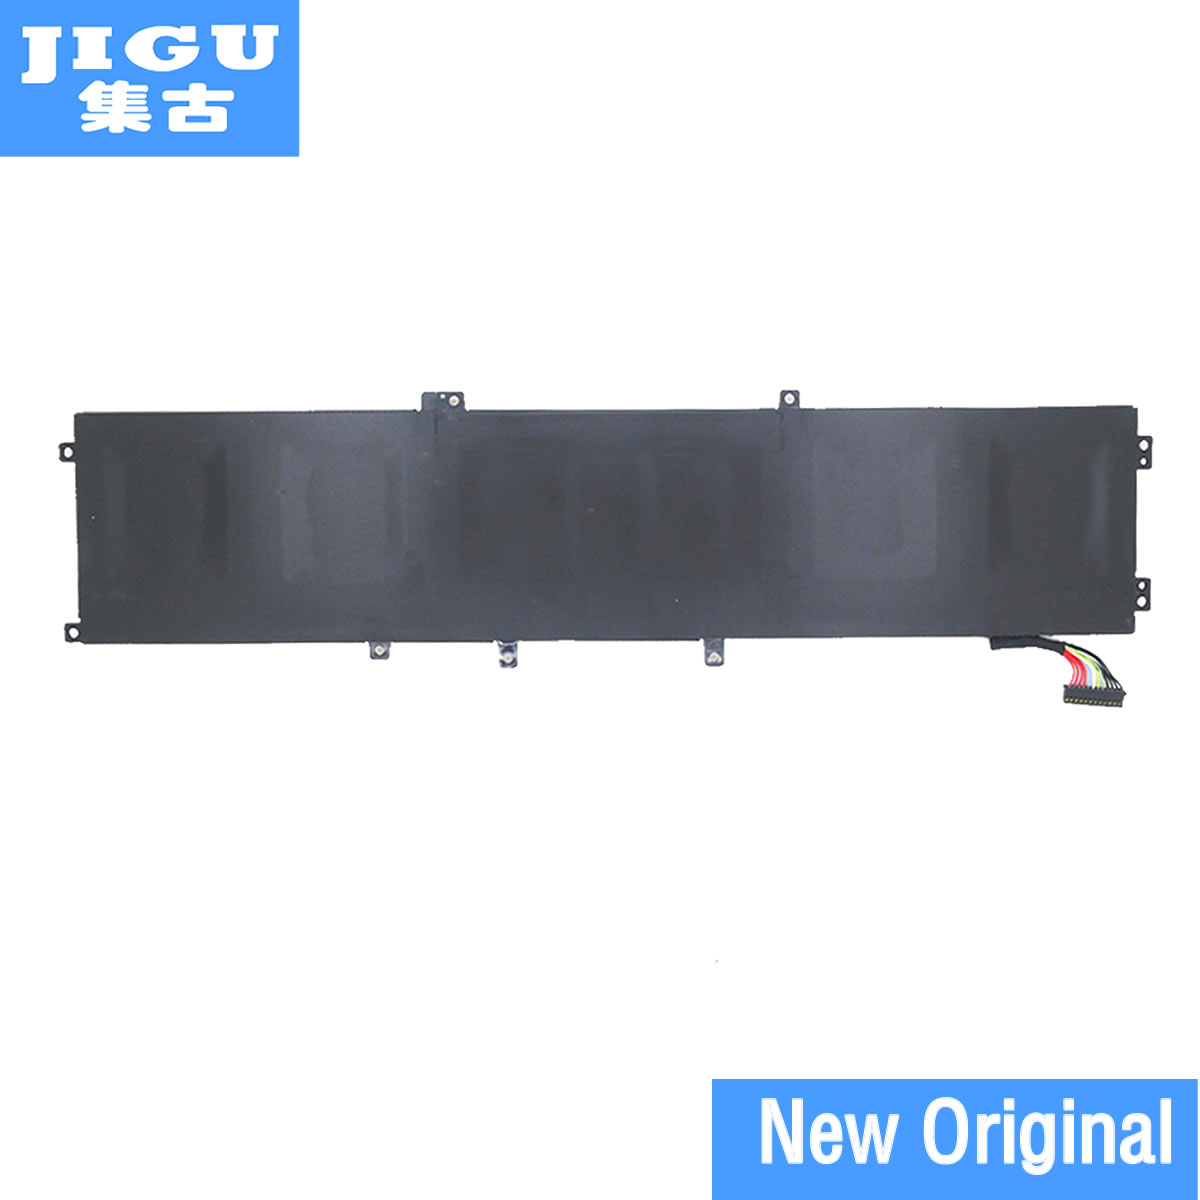 JIGU 11.4V Original Laptop Battery 6GTPY 5XJ28 For Dell Precision 5510 XPS 15 9550 9560 Laptop Tablet BATTERY 97WH цена и фото